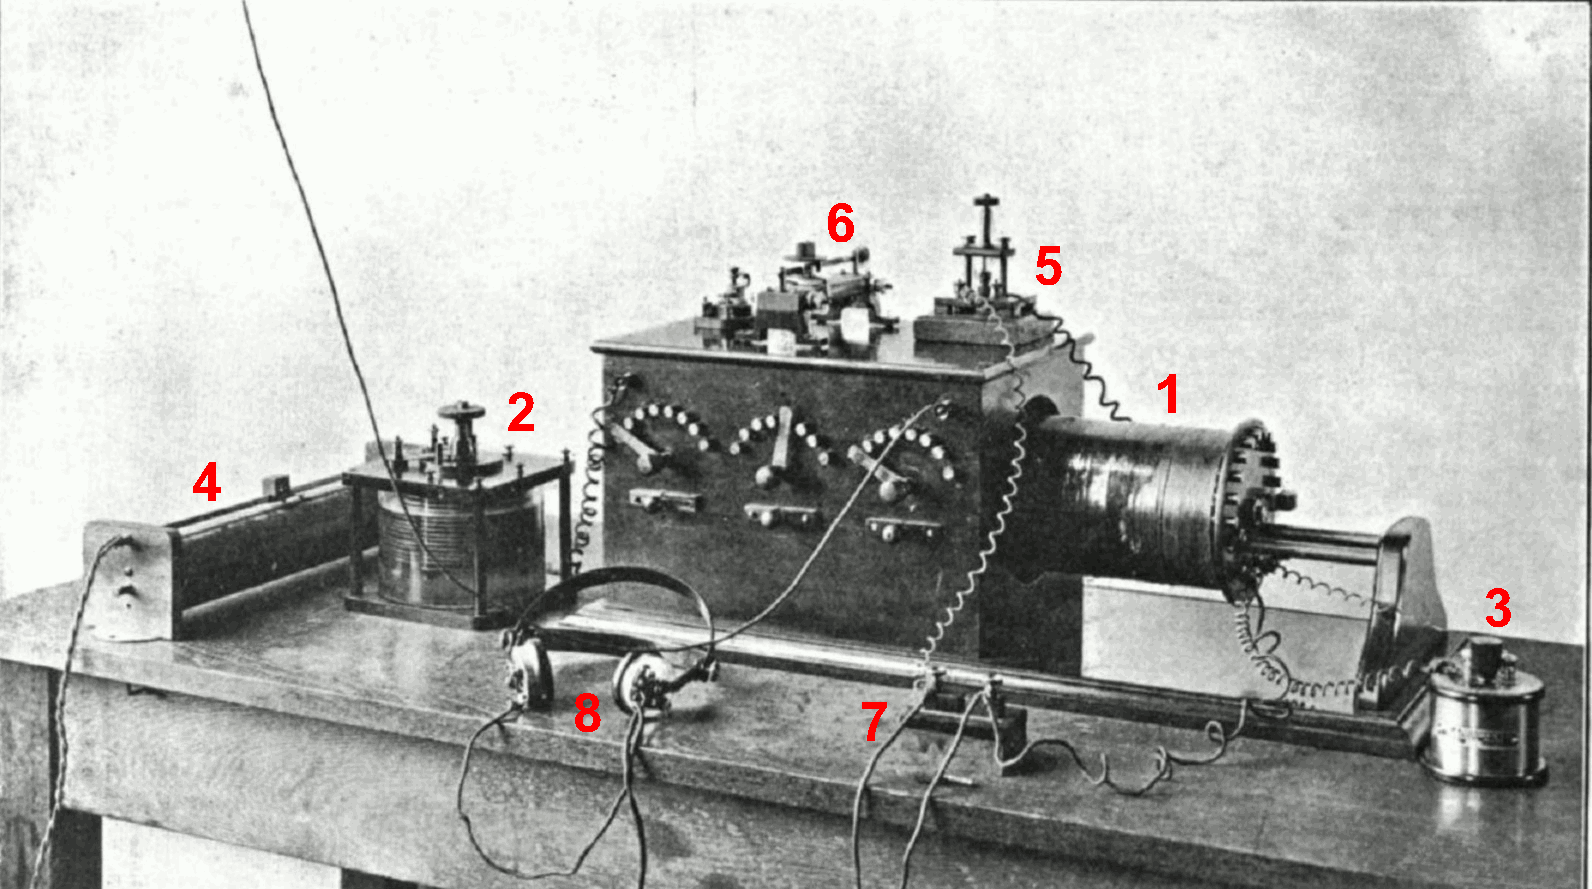 File Crystal radio receiver from wireless era together with Clipart 146091 besides Nueve Inventos Que No Son Obra De Edison further Hillary Clinton Loves Bernie Sanders Huge Clinton Advantage Martin Omalley Elizabeth Warren 117533 besides 329190 FBI Finally Releases Long Held Tesla Documents On Death Ray Ball Lightning And Other Information. on tesla spirit radio